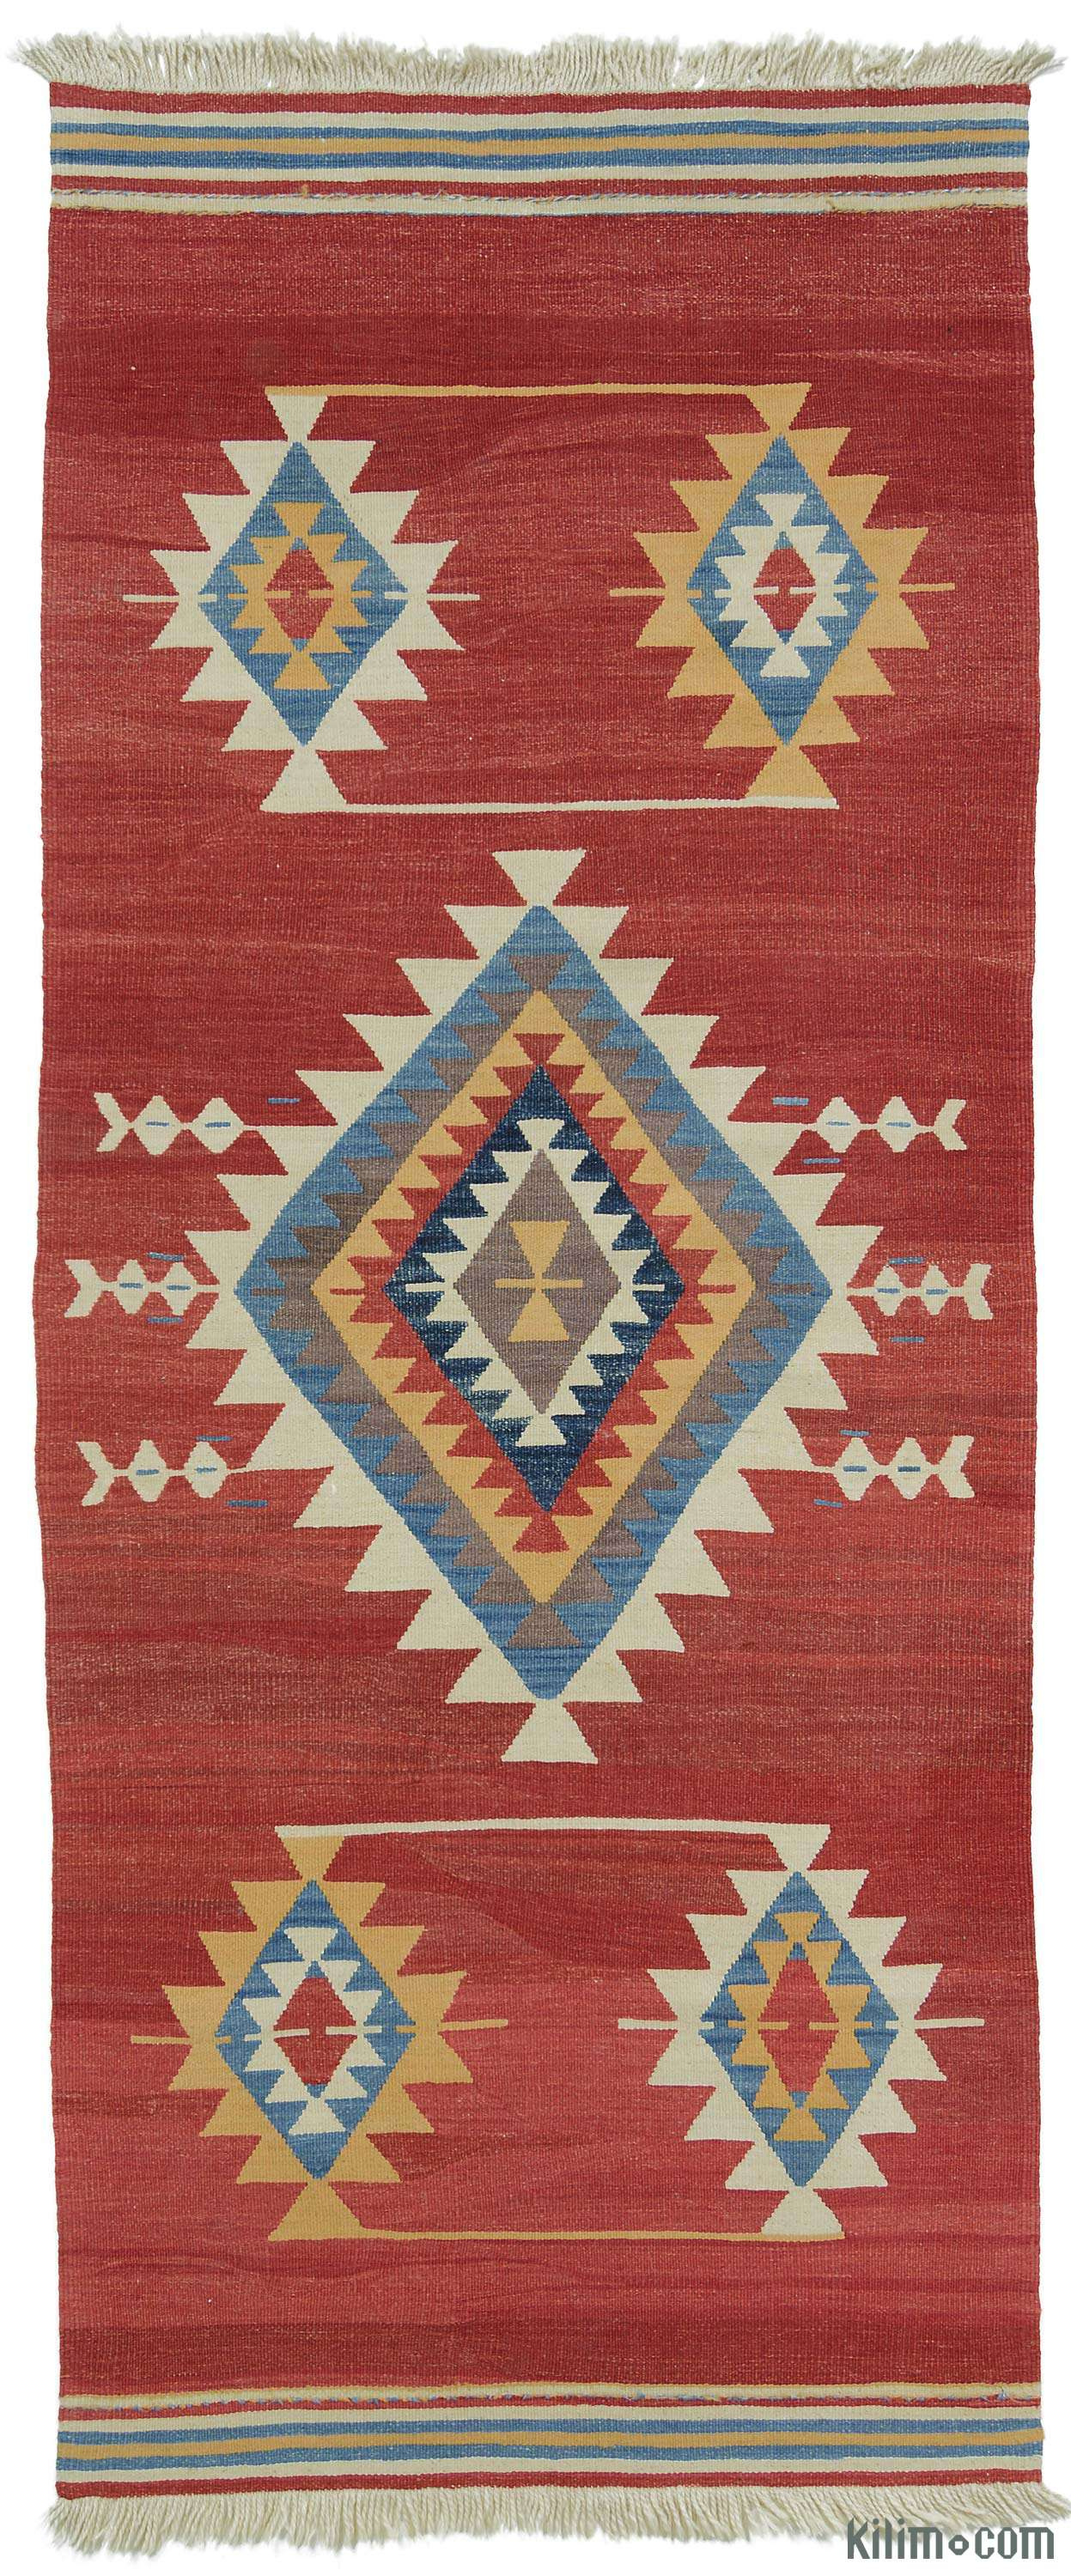 Rugs And Kilims Are The Master Elements Of Bohemian Style: K0004367 Red New Turkish Kilim Runner